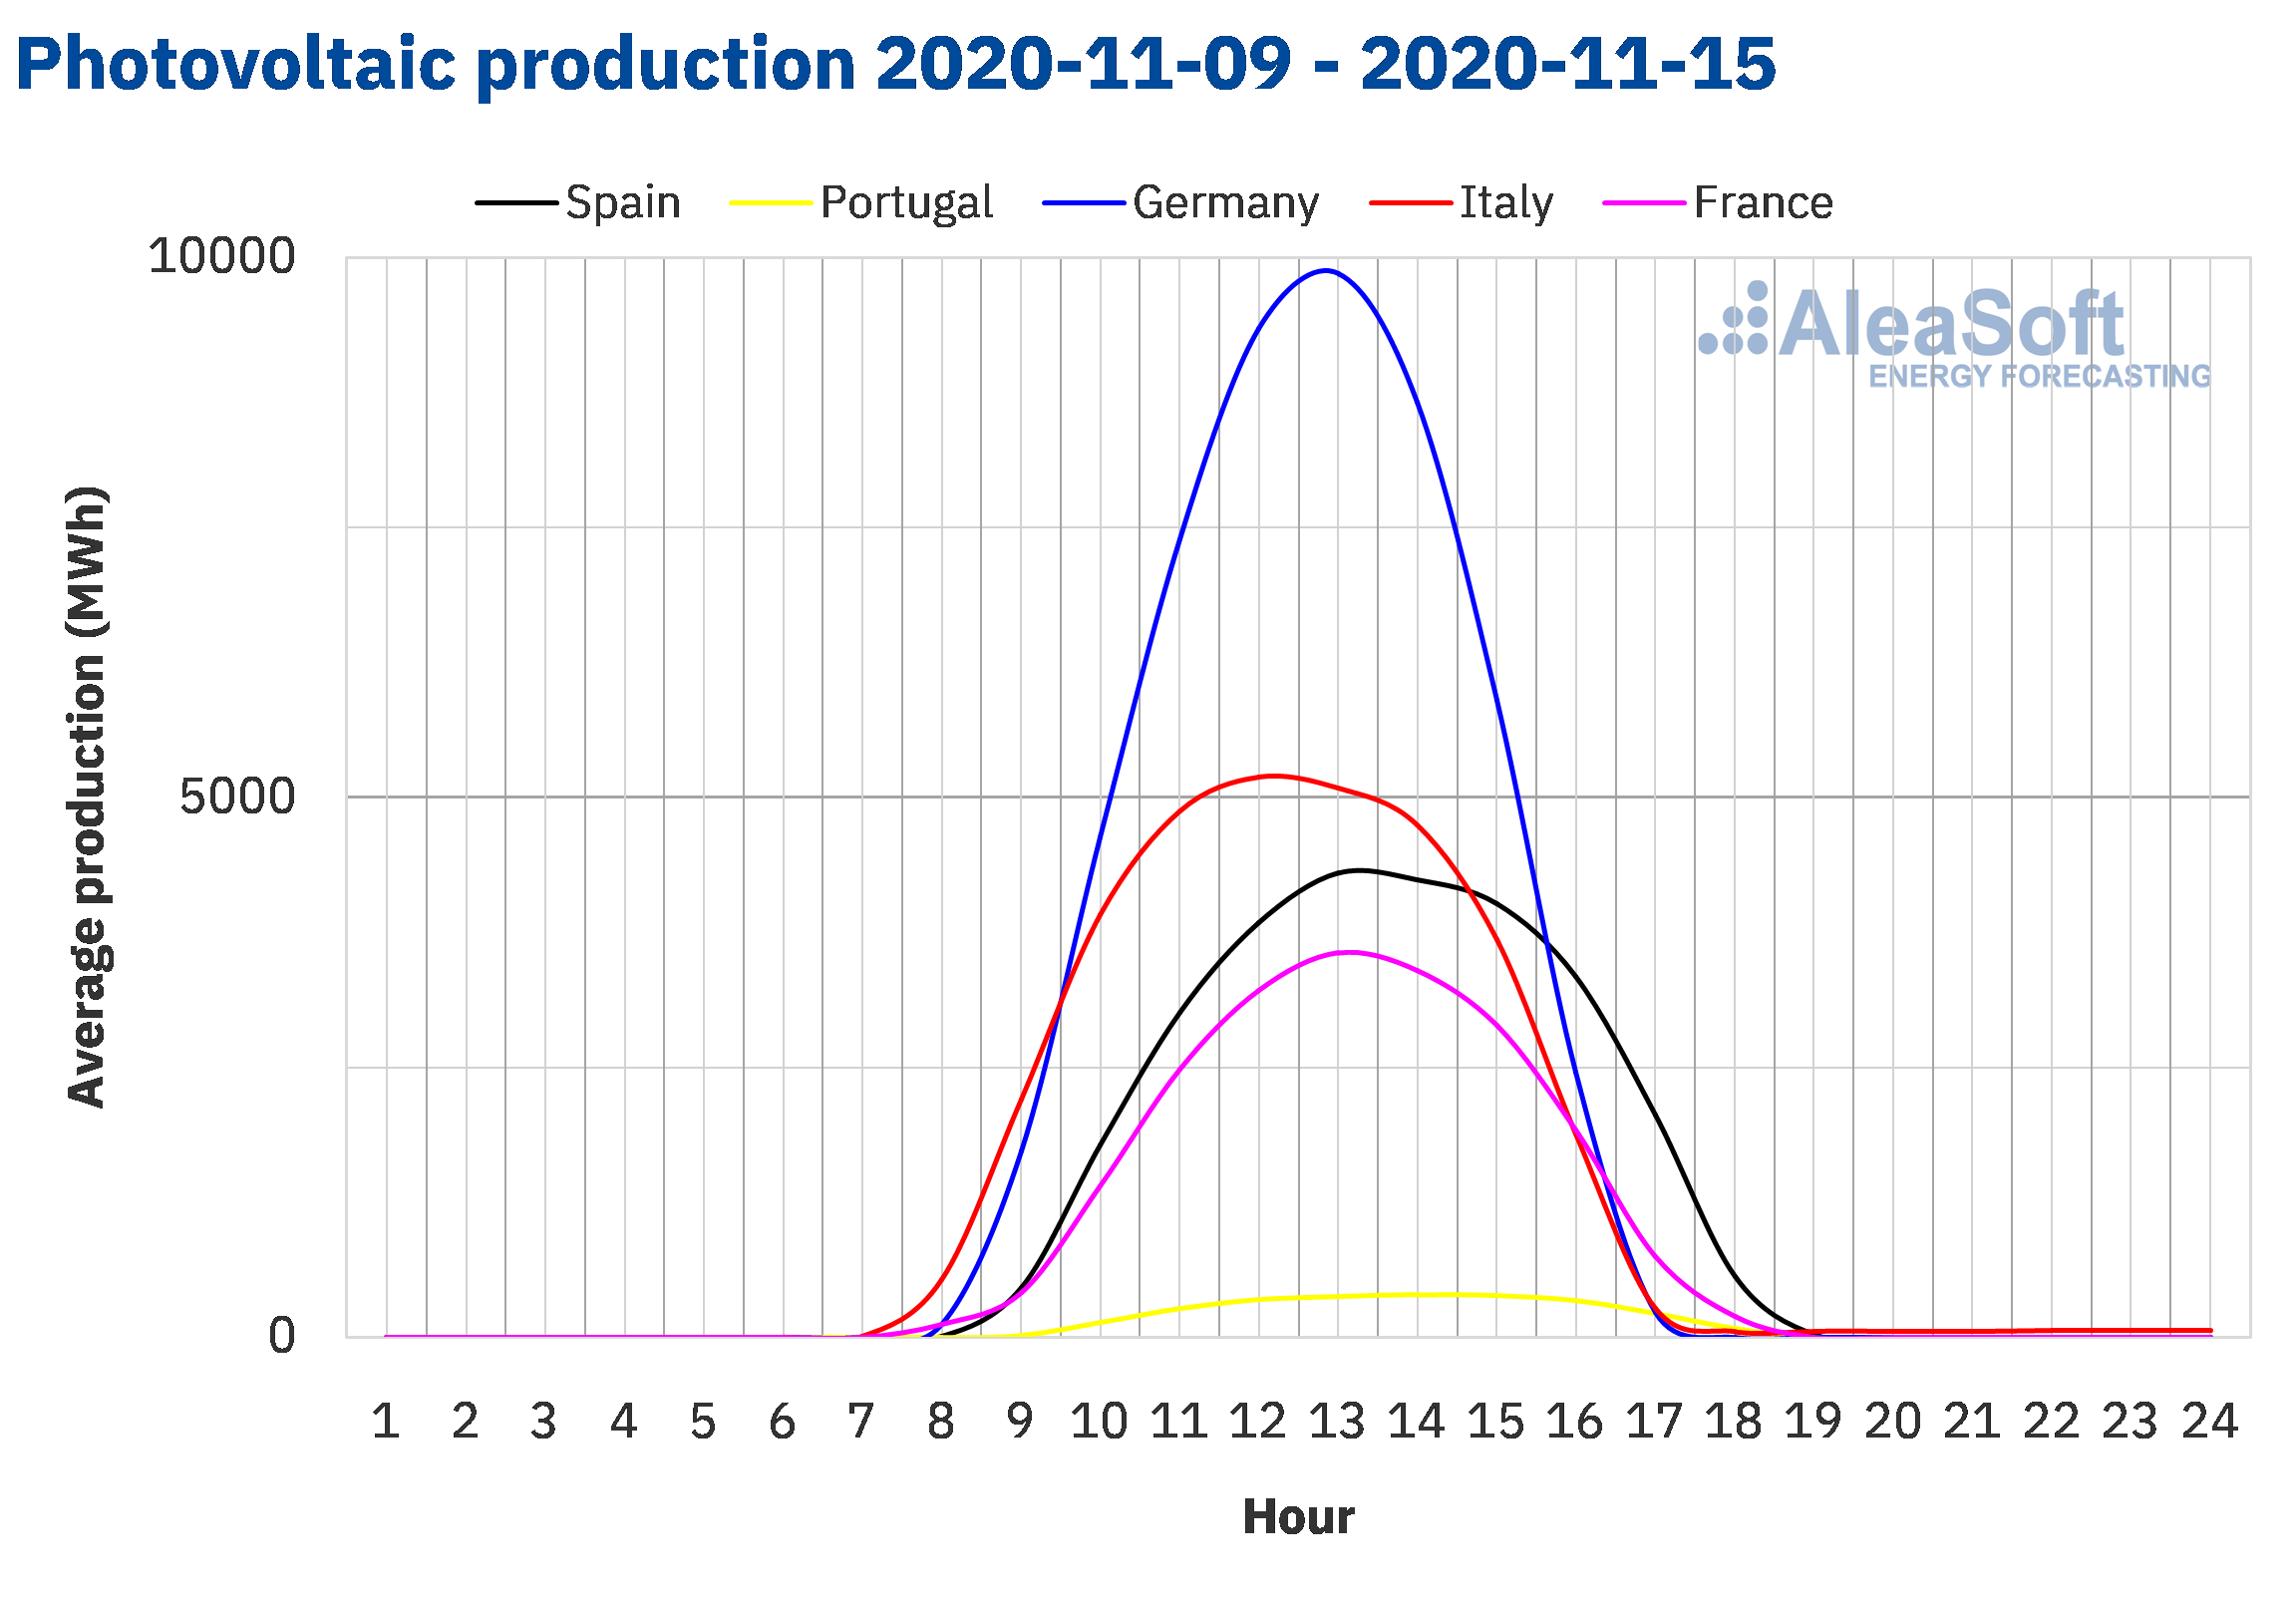 AleaSoft - Solar photovoltaic production profile Europe